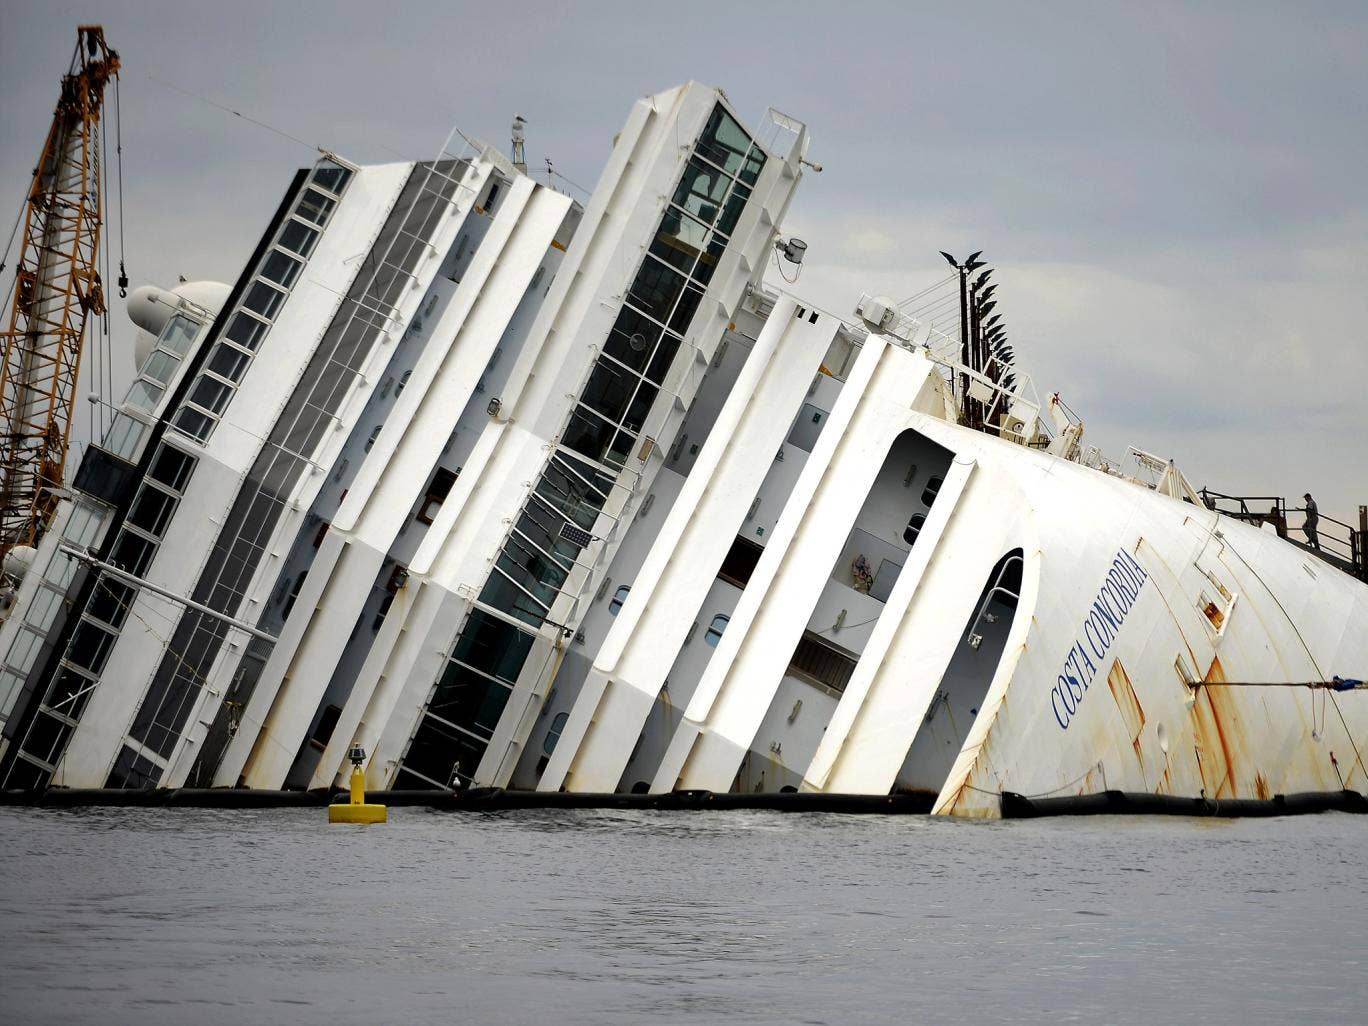 The Costa Concordia, once towed to Sicily, will be cut into pieces and sold for scrap